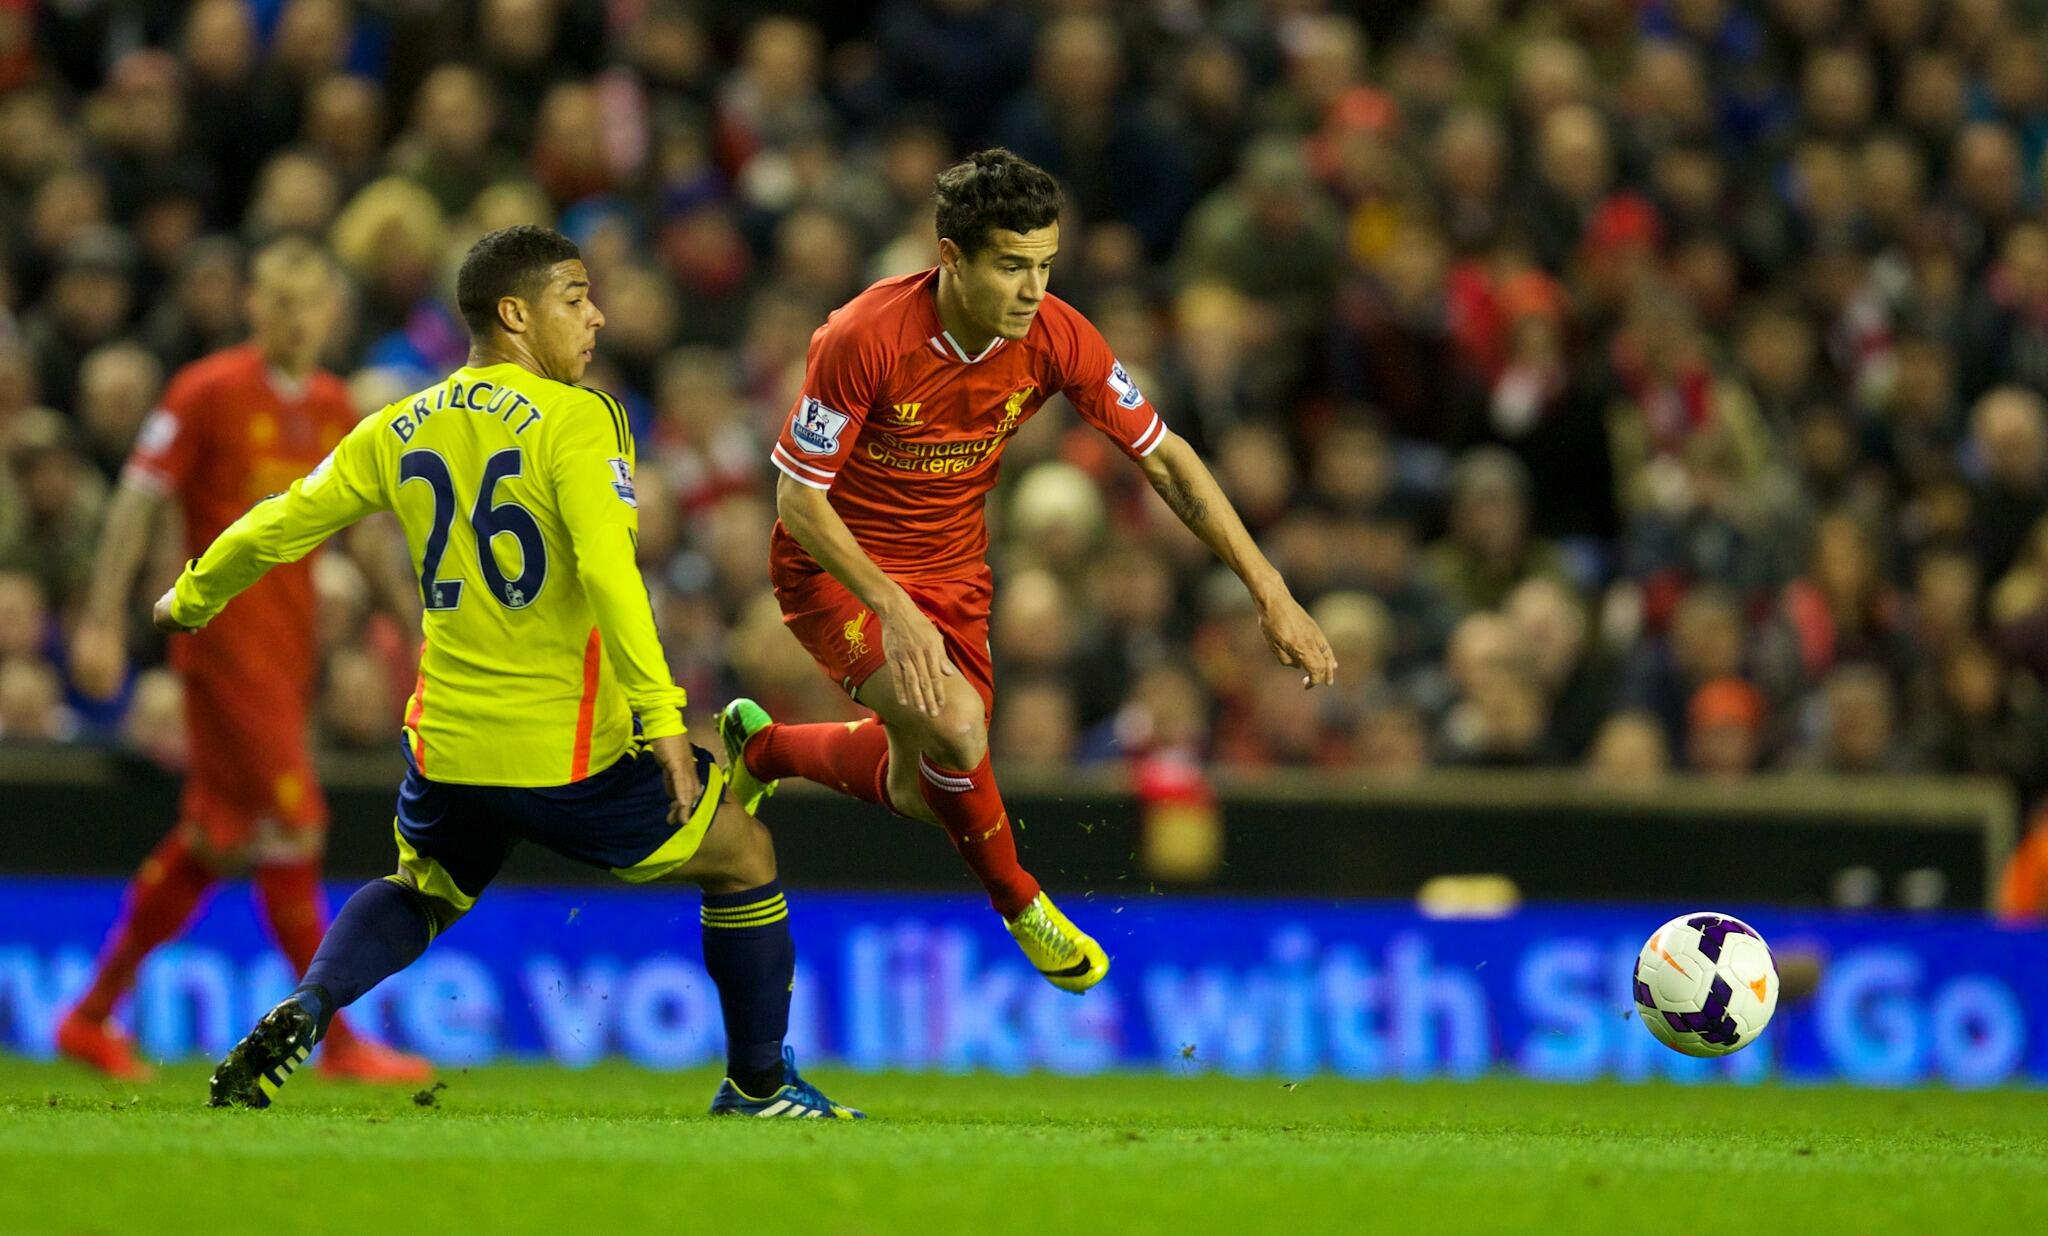 Congratulations to @Phil_Coutinho who you voted as #LFC's Man of the Match against Sunderland tonight http://t.co/aTPMSfXiTu